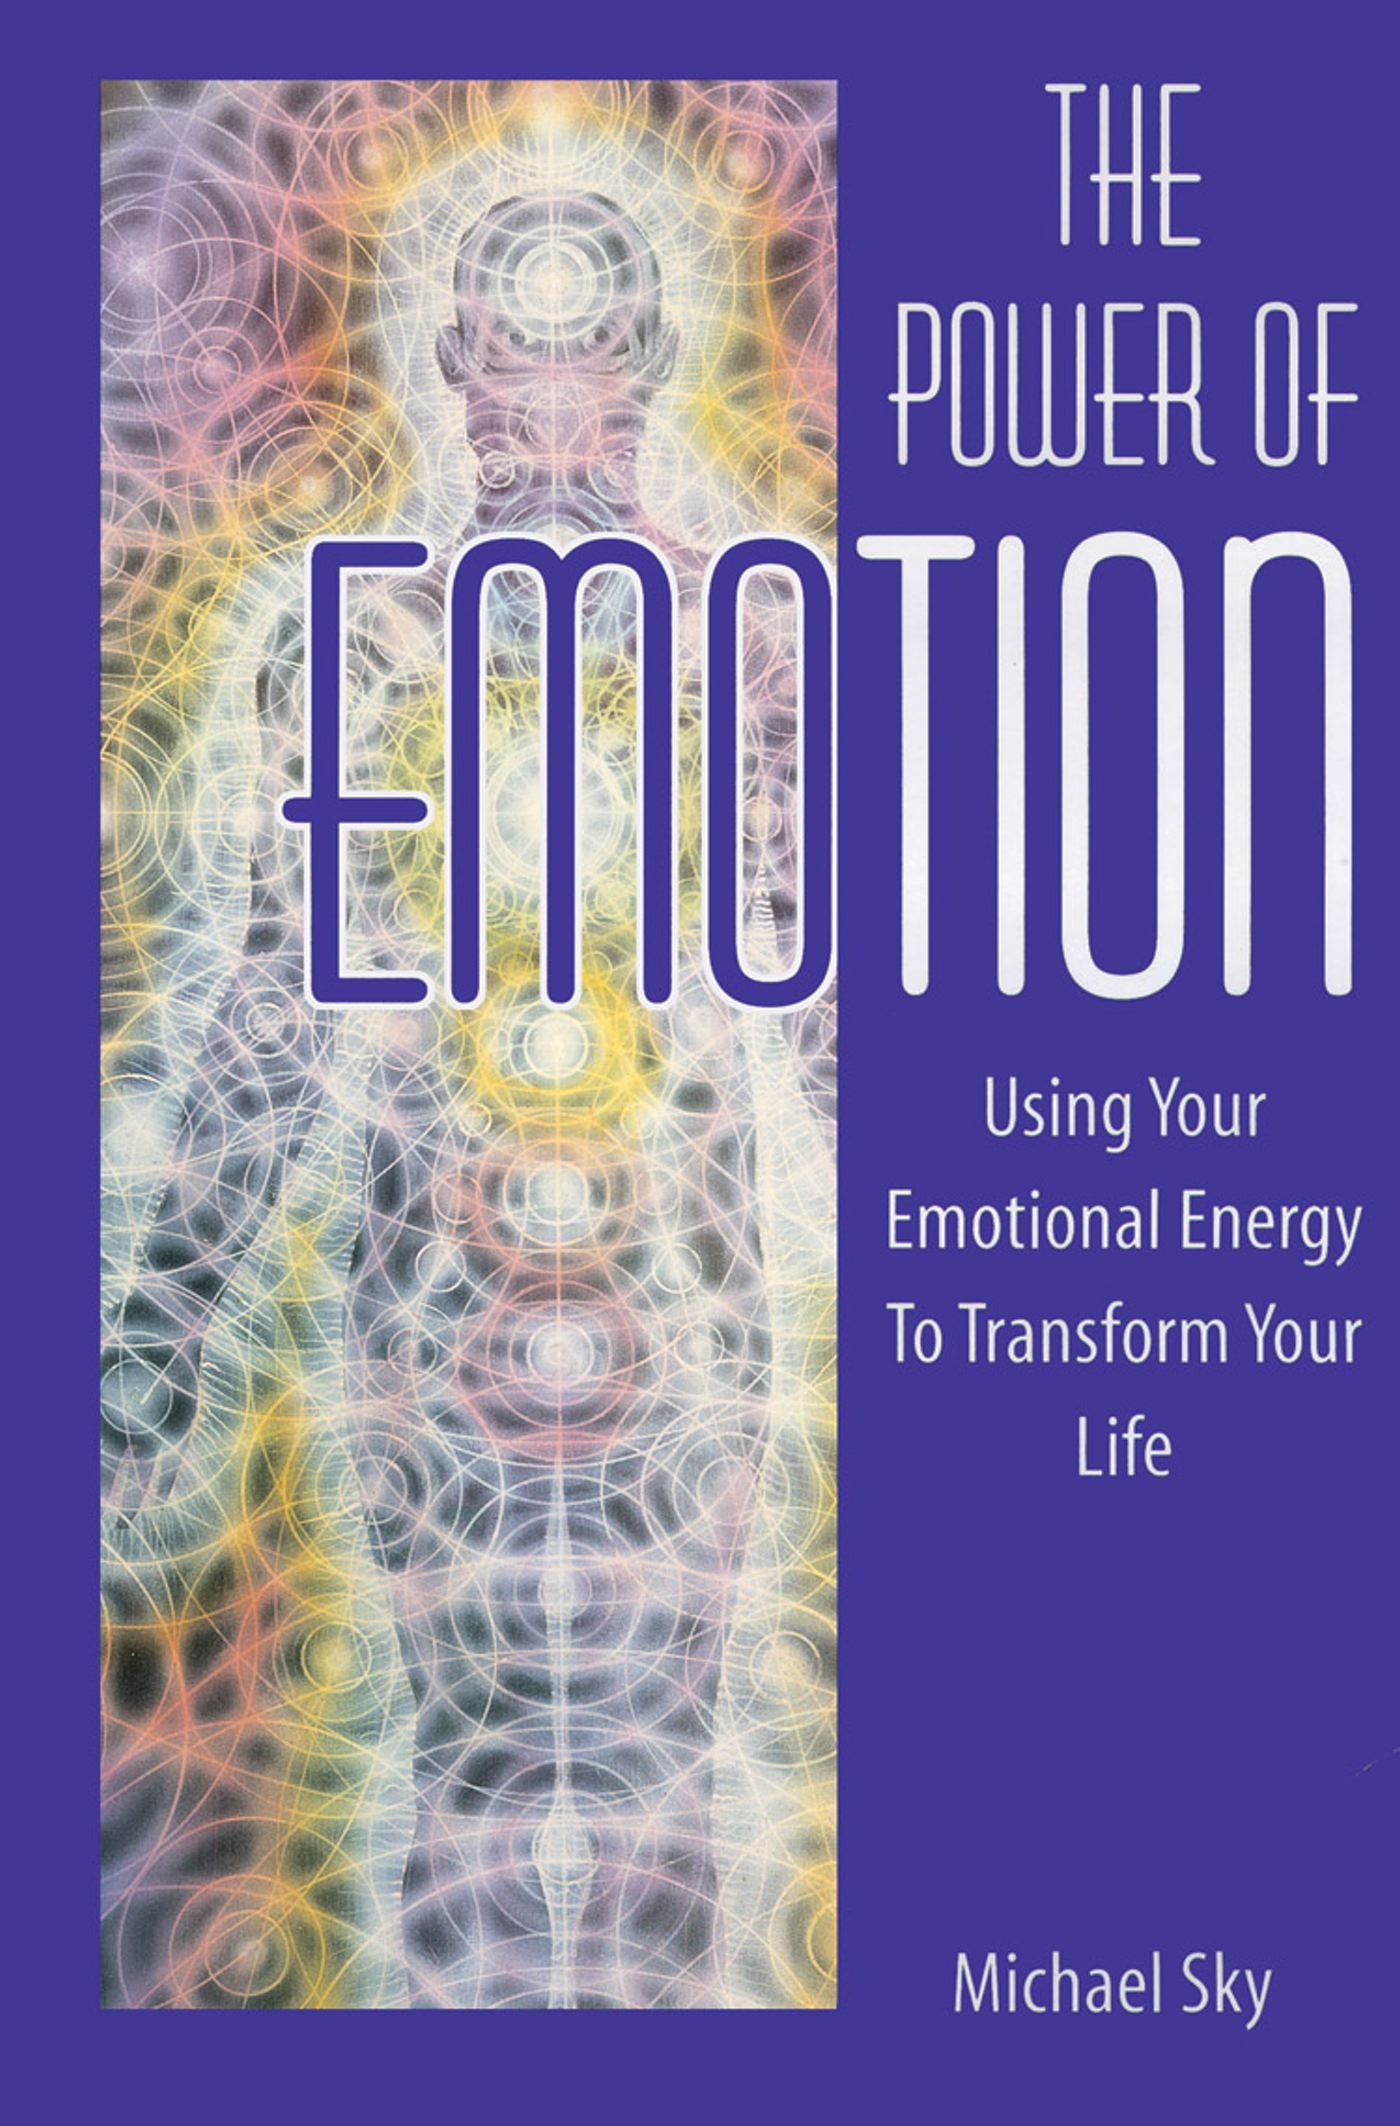 The power of emotion 9781879181922 hr